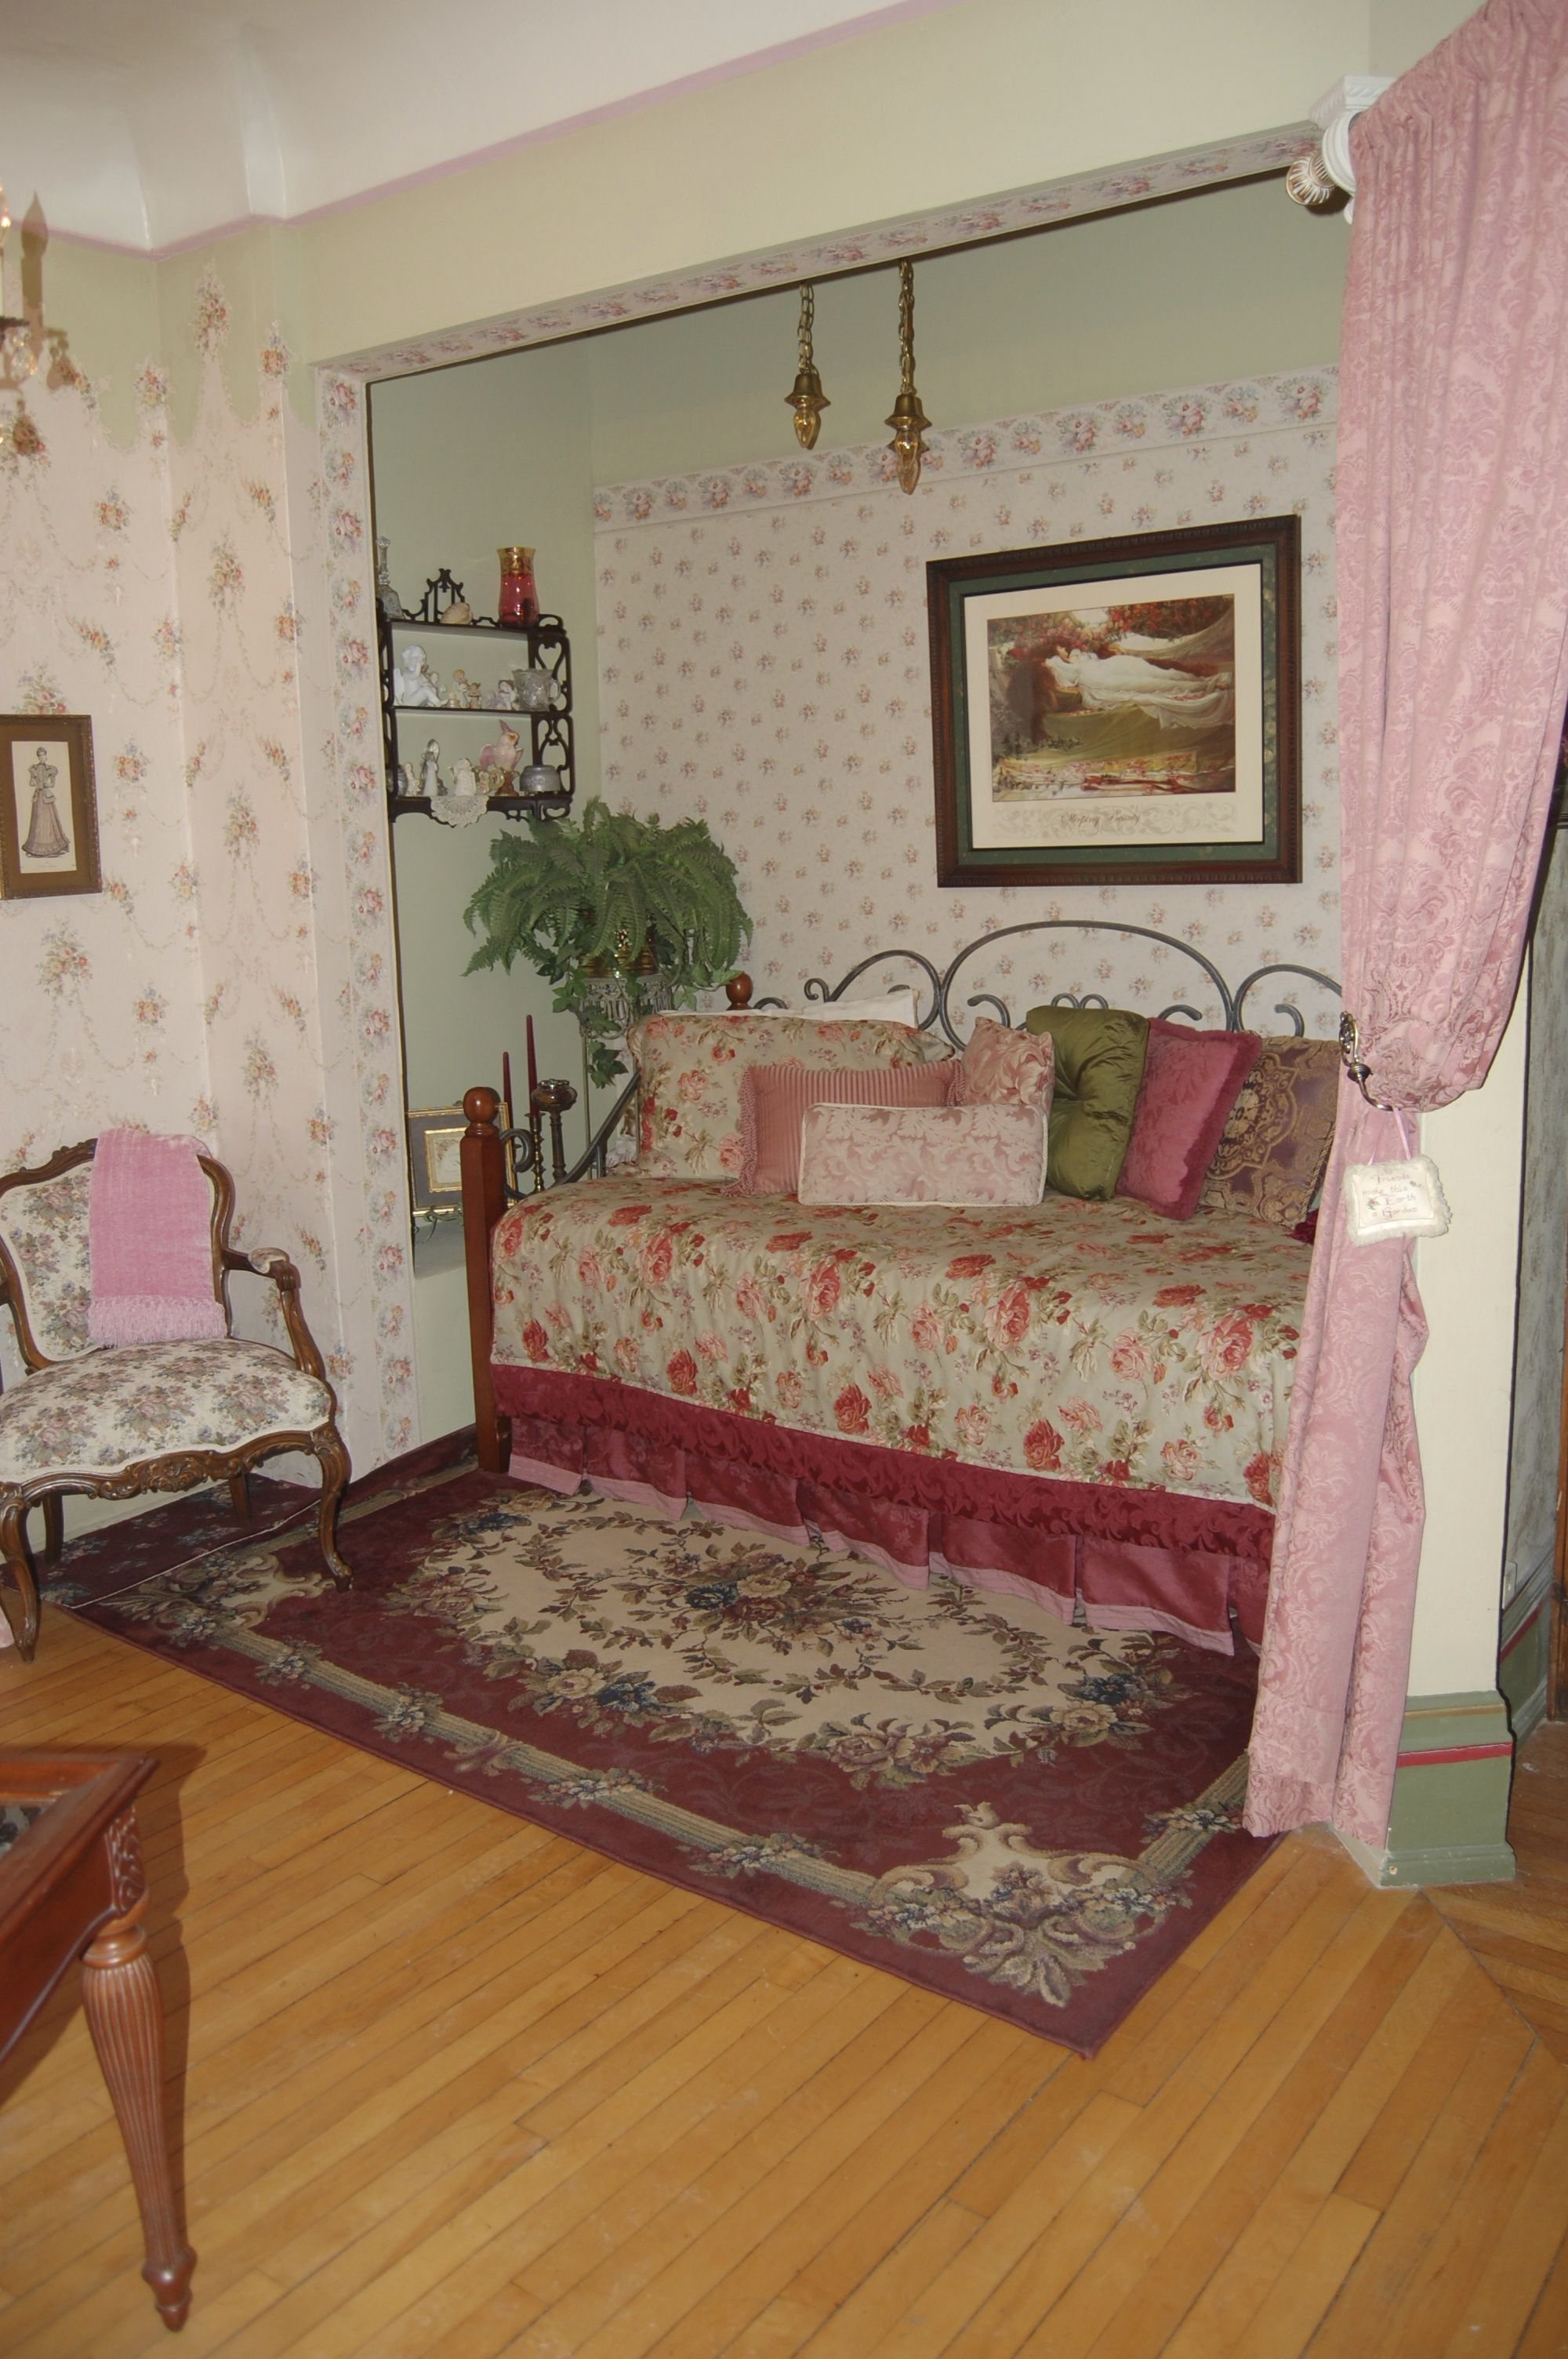 Twin Bed Hotel Room: Frist Room You Walk Into. This Room Can Sleep 2 People